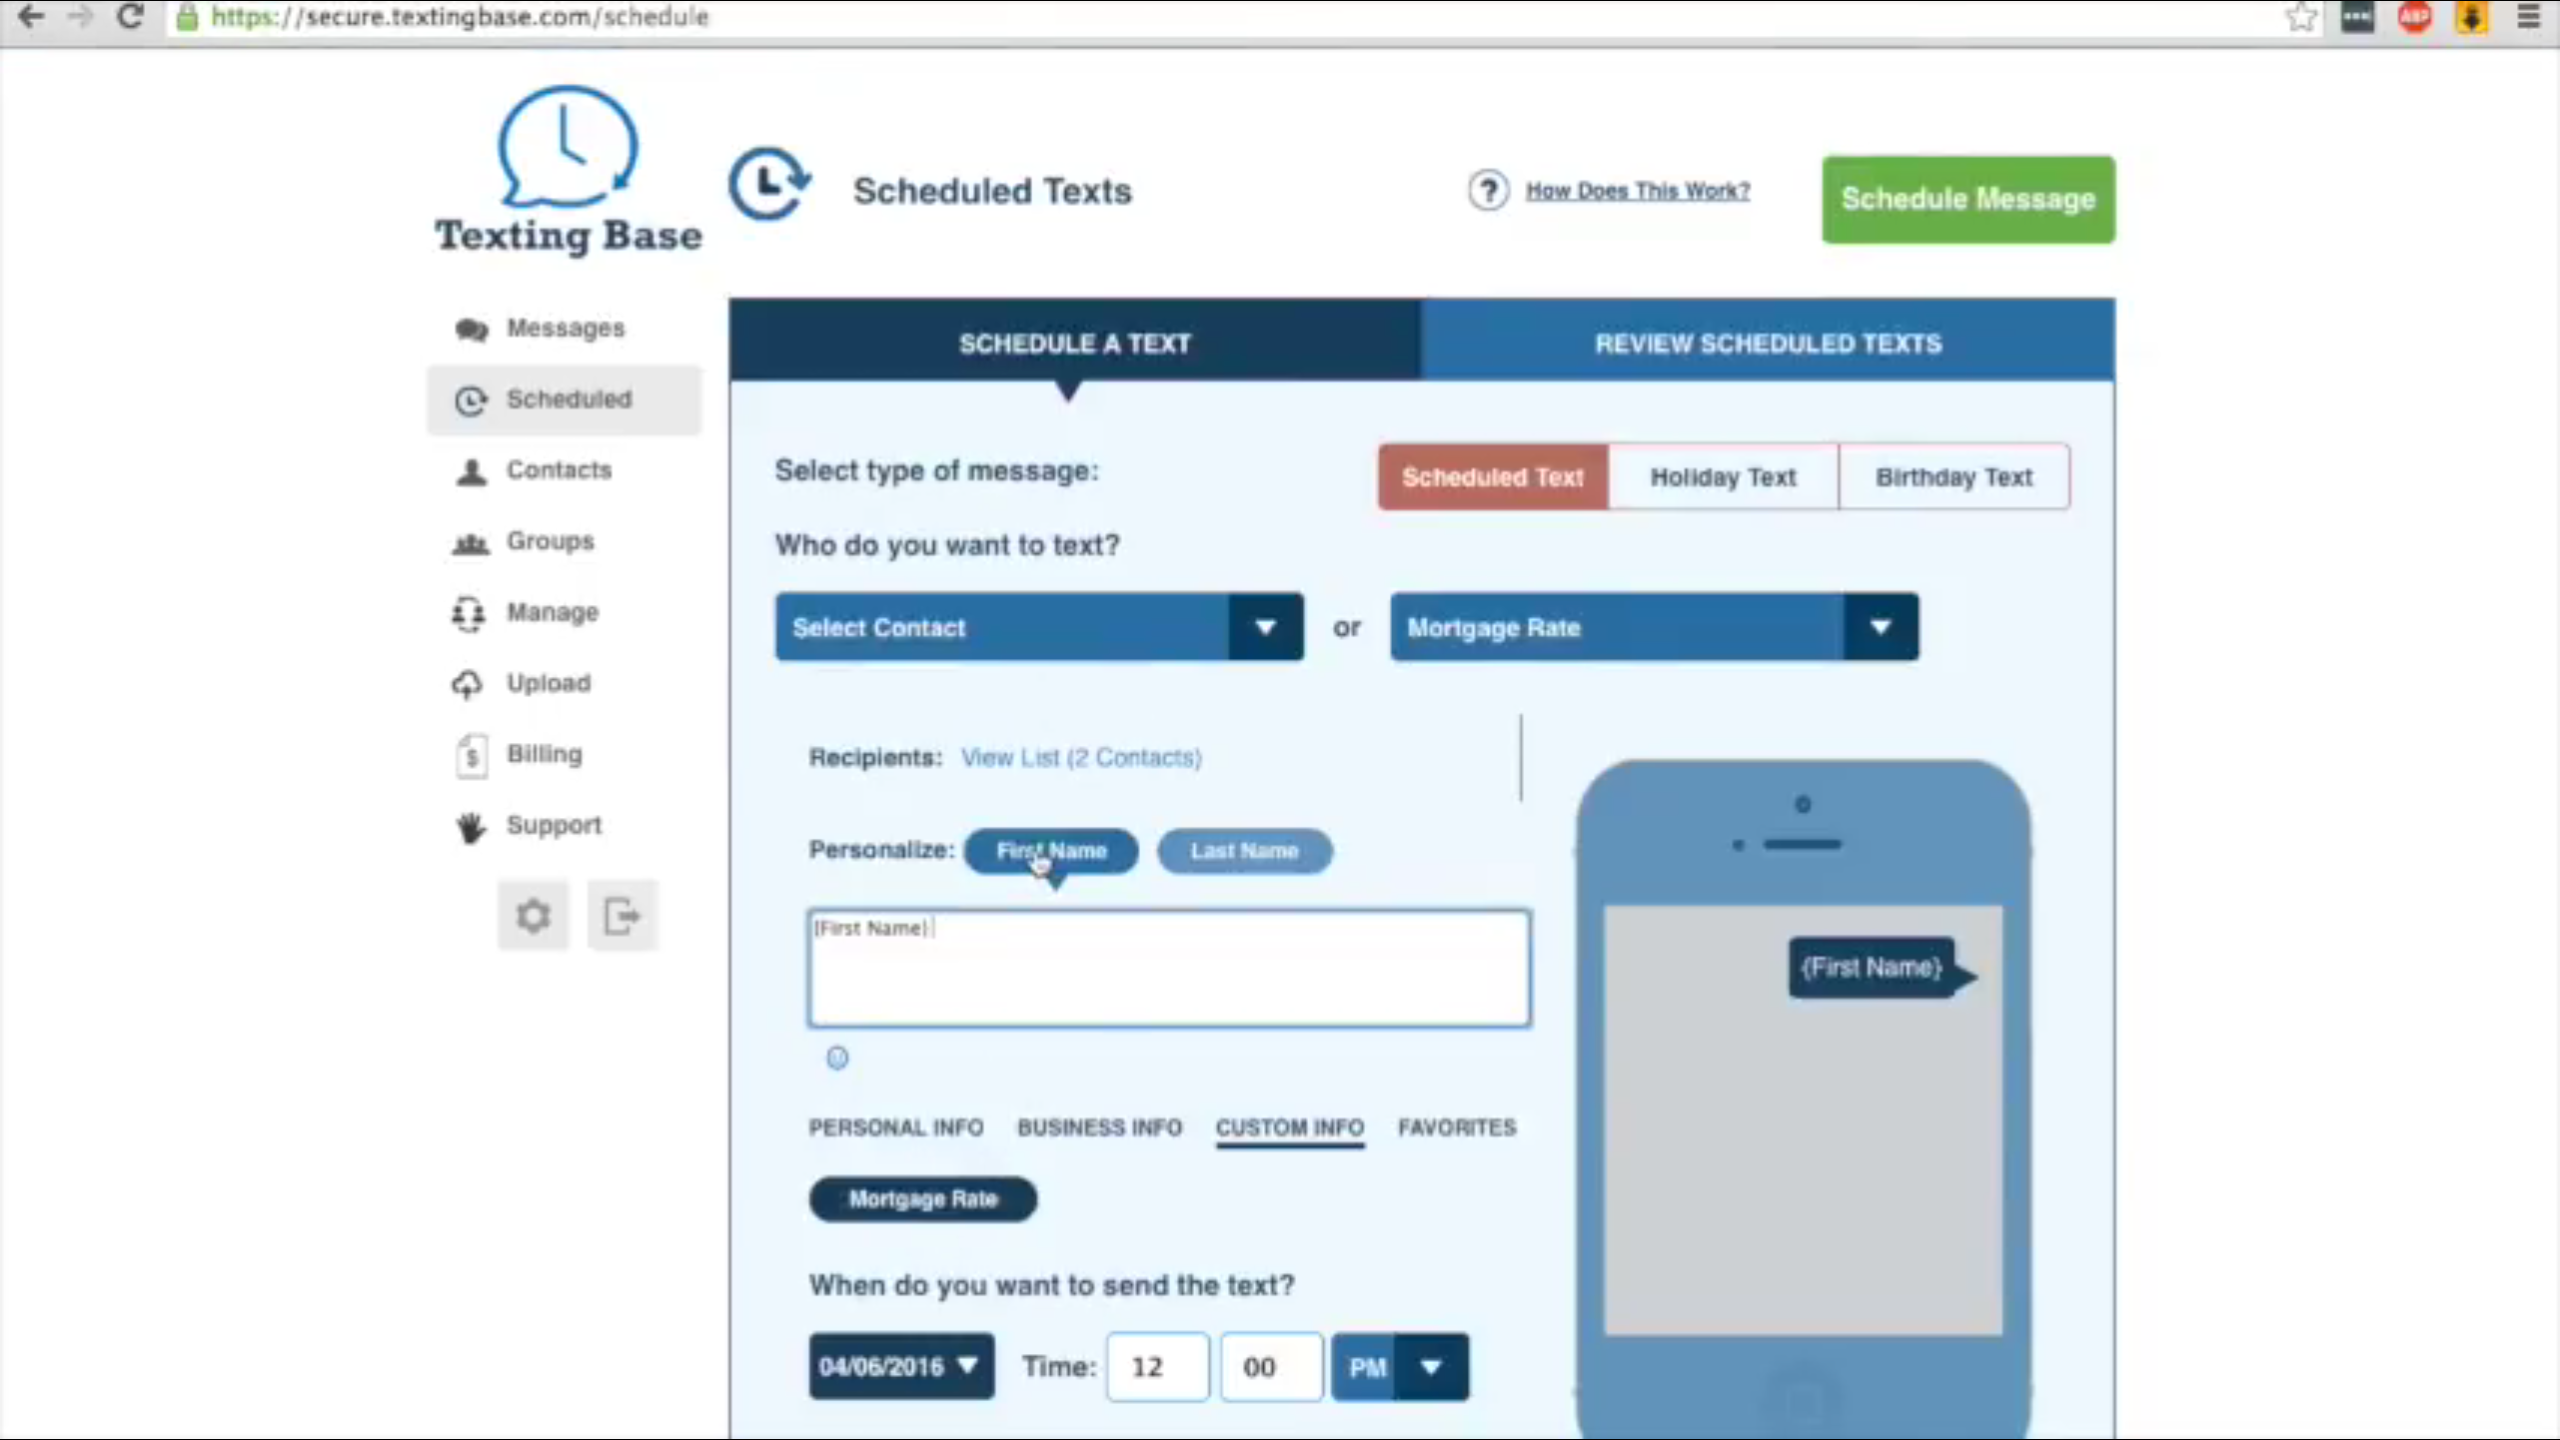 The Schedule A Text screen allows personalized messages to be drafted, scheduled and previewed